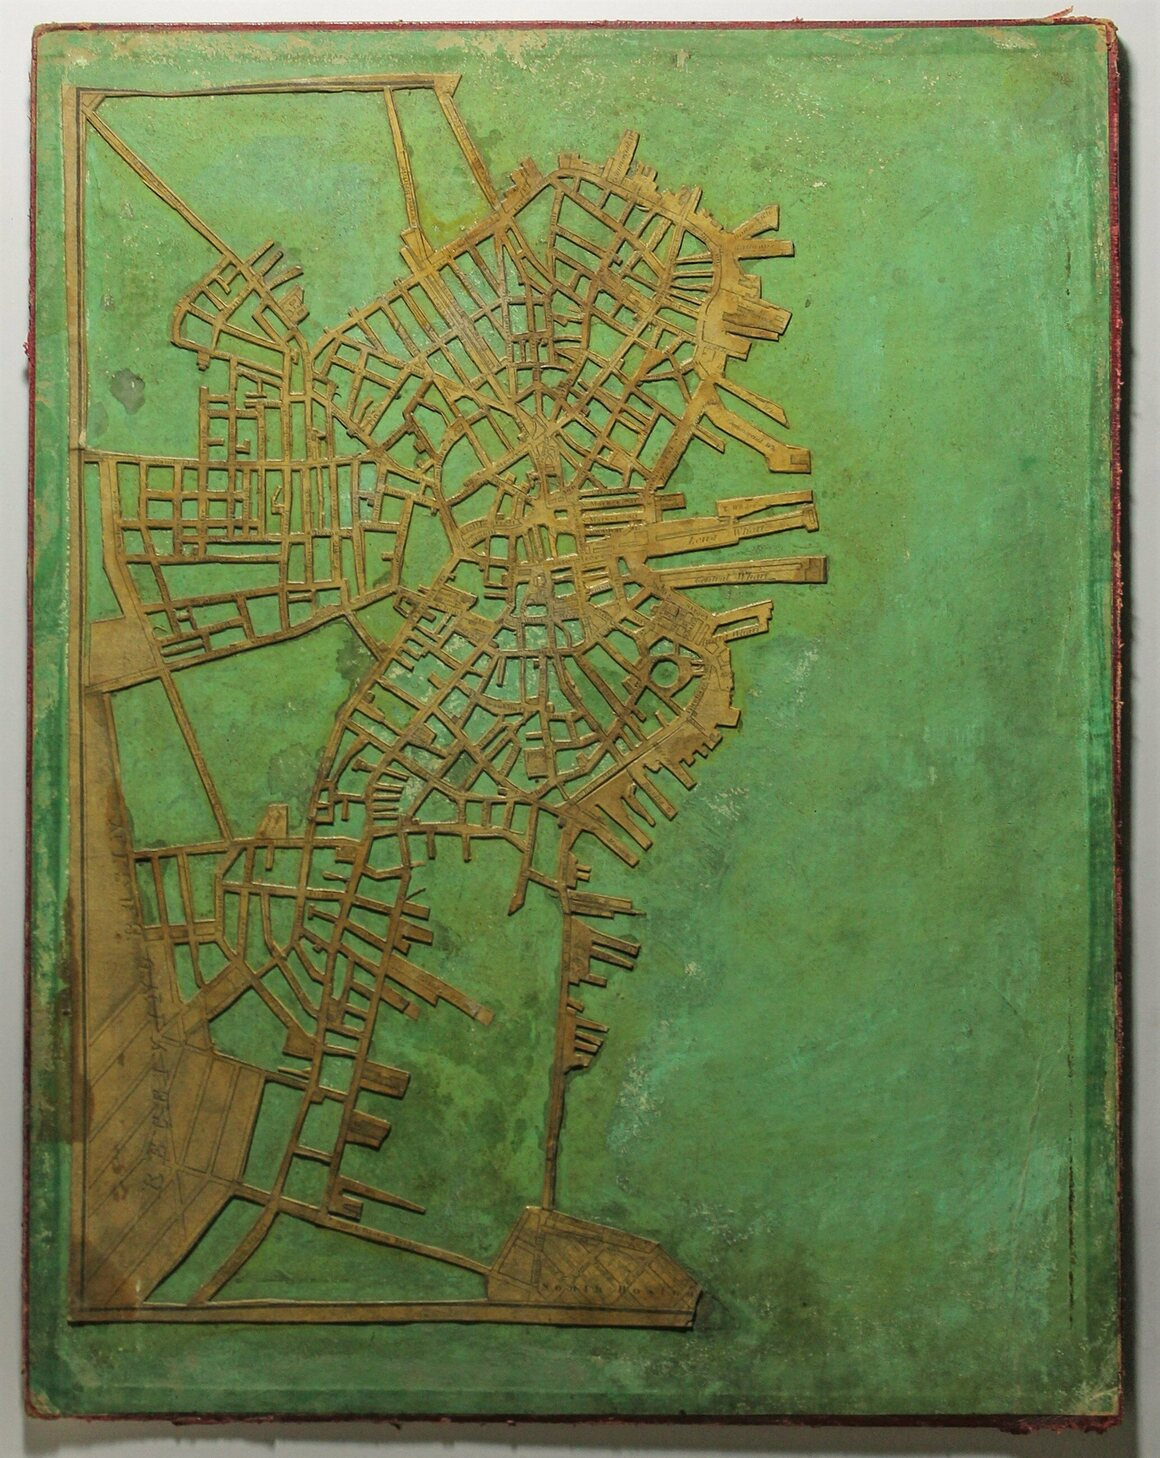 Stephen P. Ruggles's 1930 map of Boston, painstakingly made from a paper map and two wooden boards.